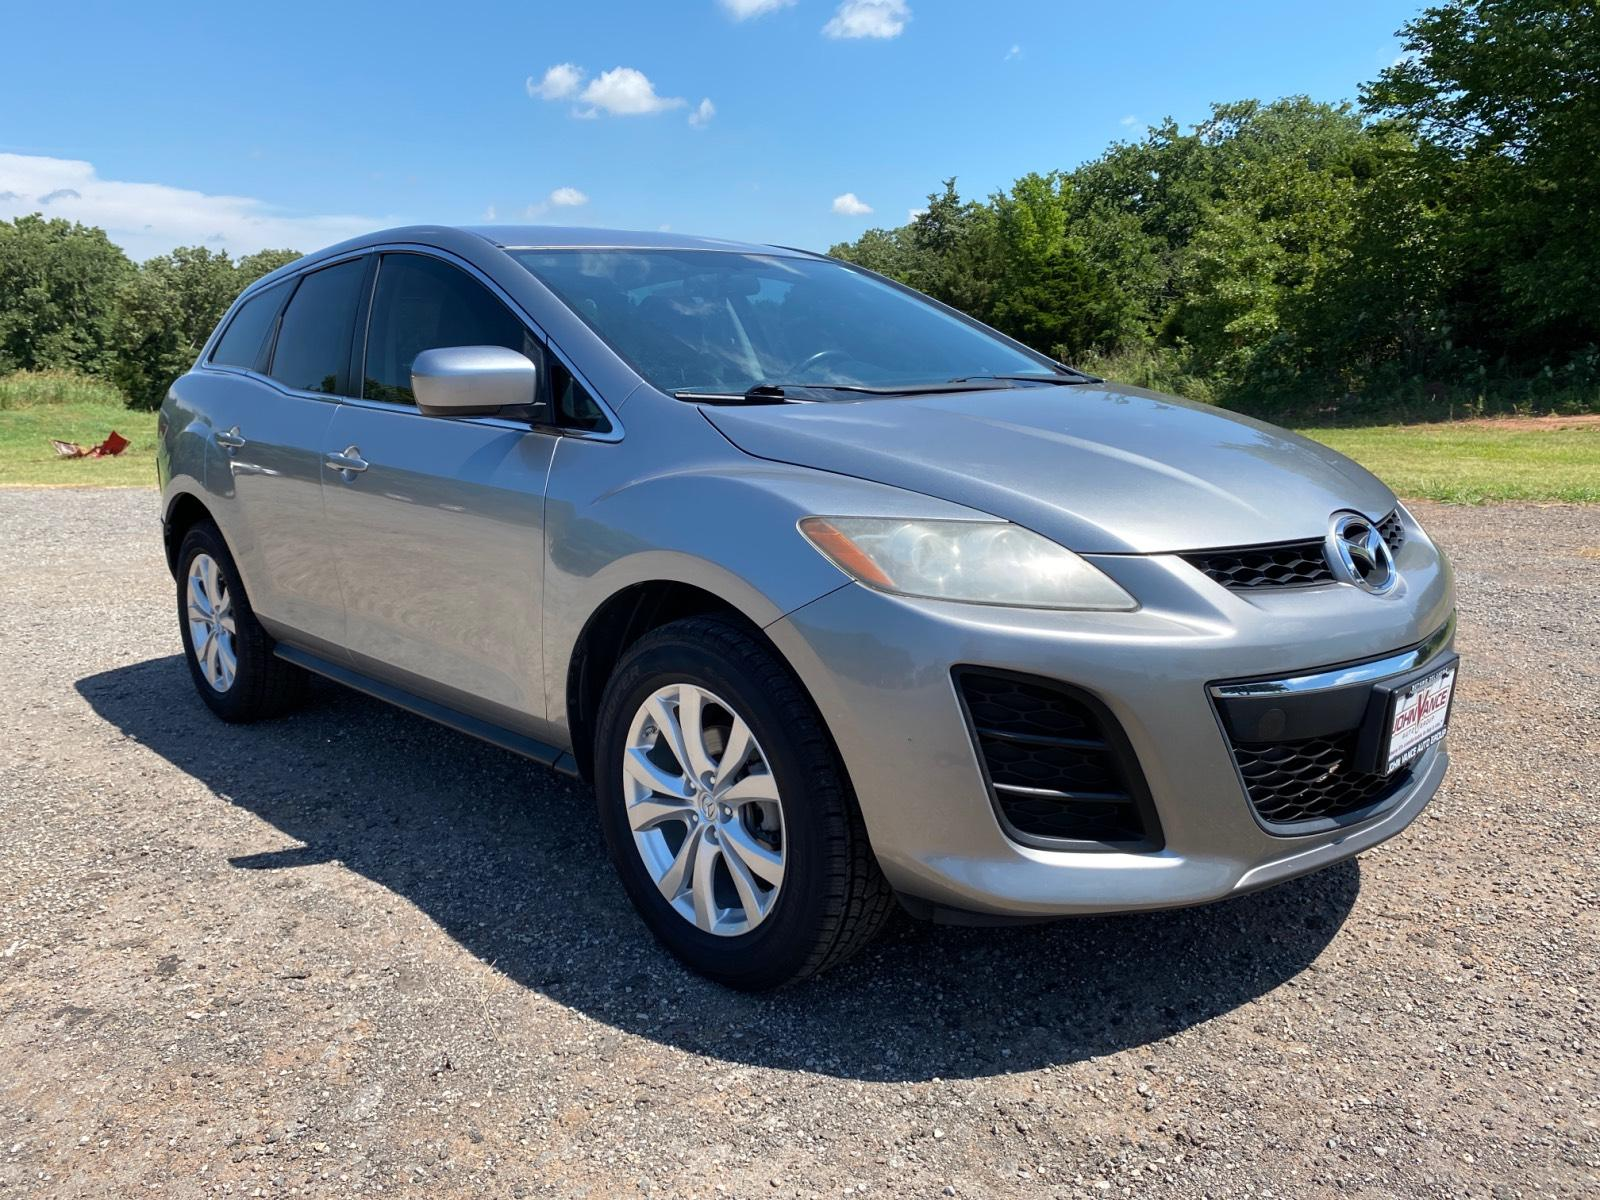 Pre-Owned 2010 Mazda CX-7 FWD 4dr s Touring